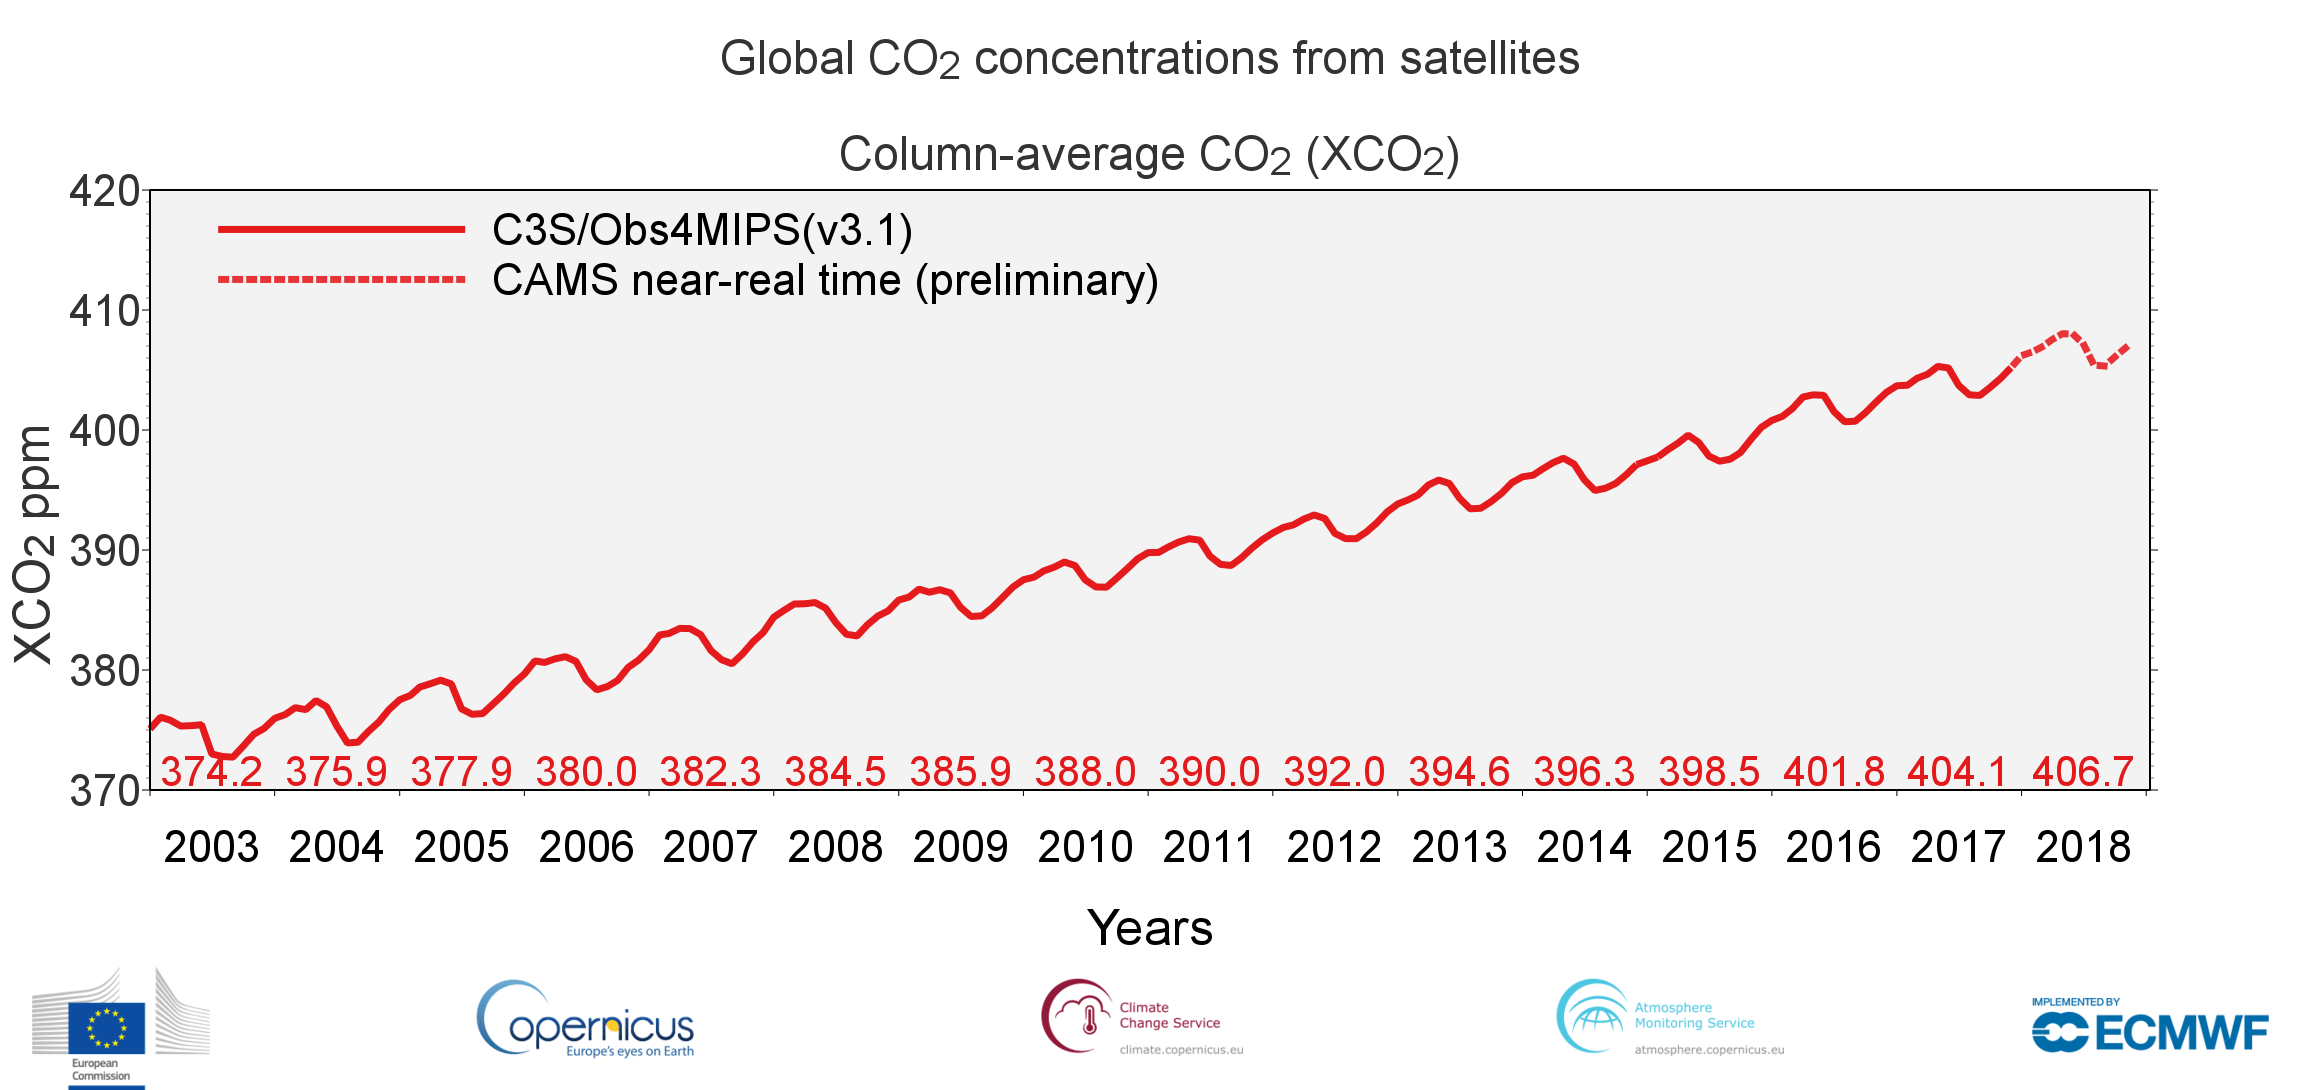 Global CO2 Concentrations from Satellites Chart